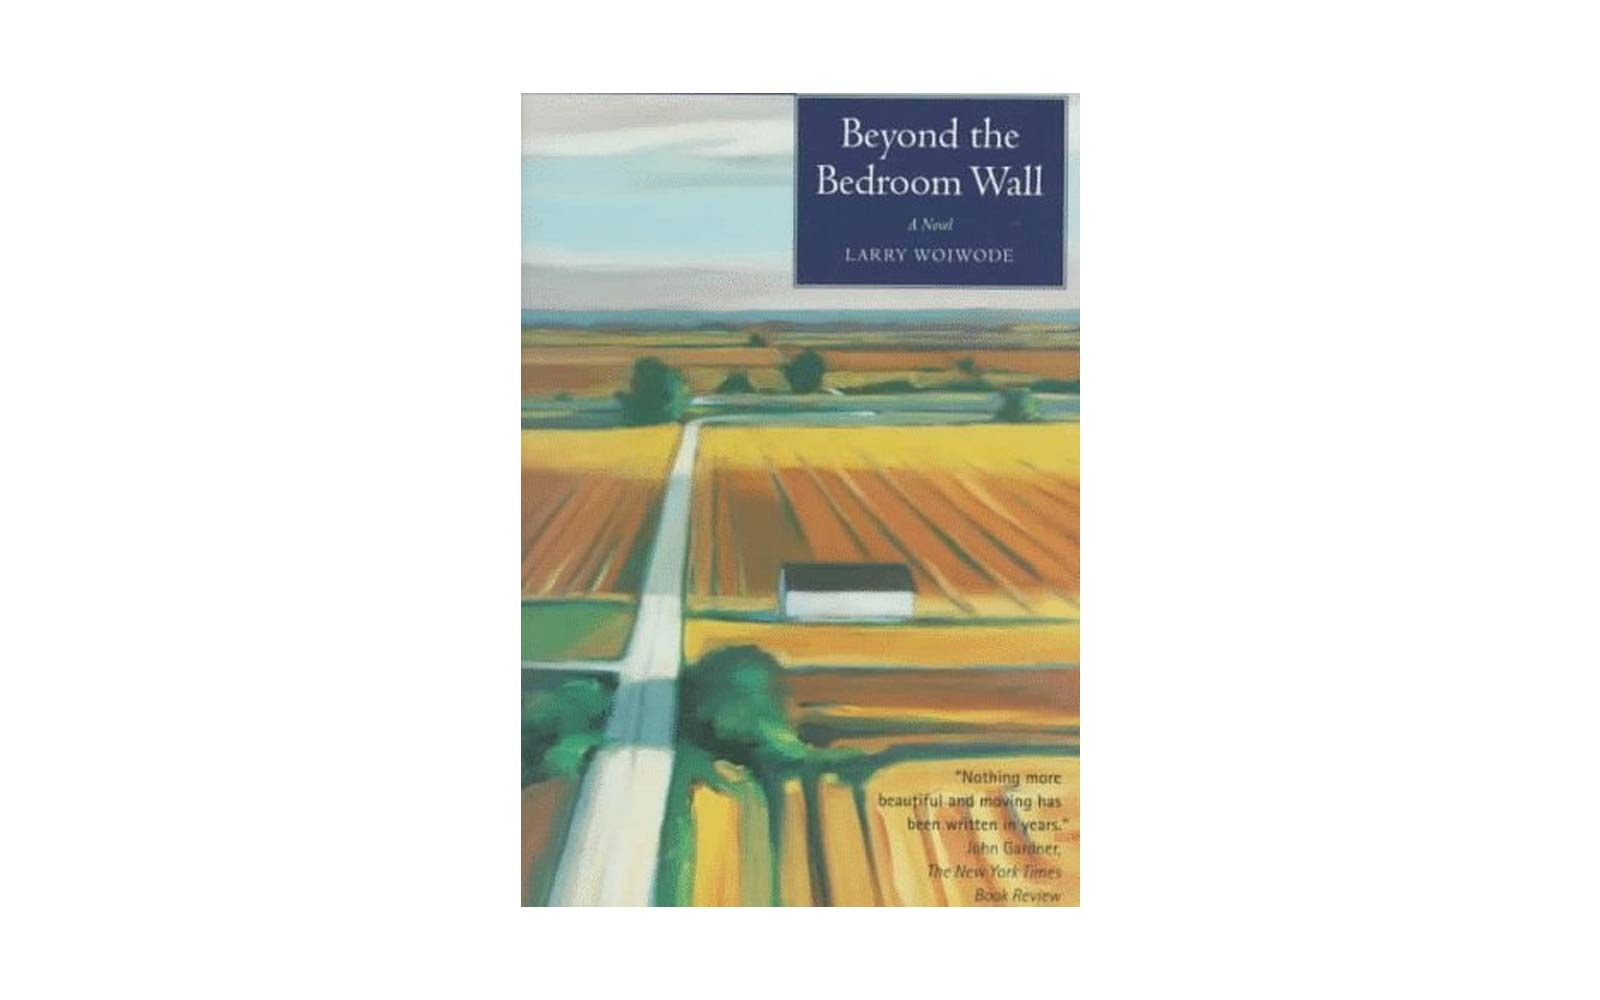 Beyond the Bedroom Wall